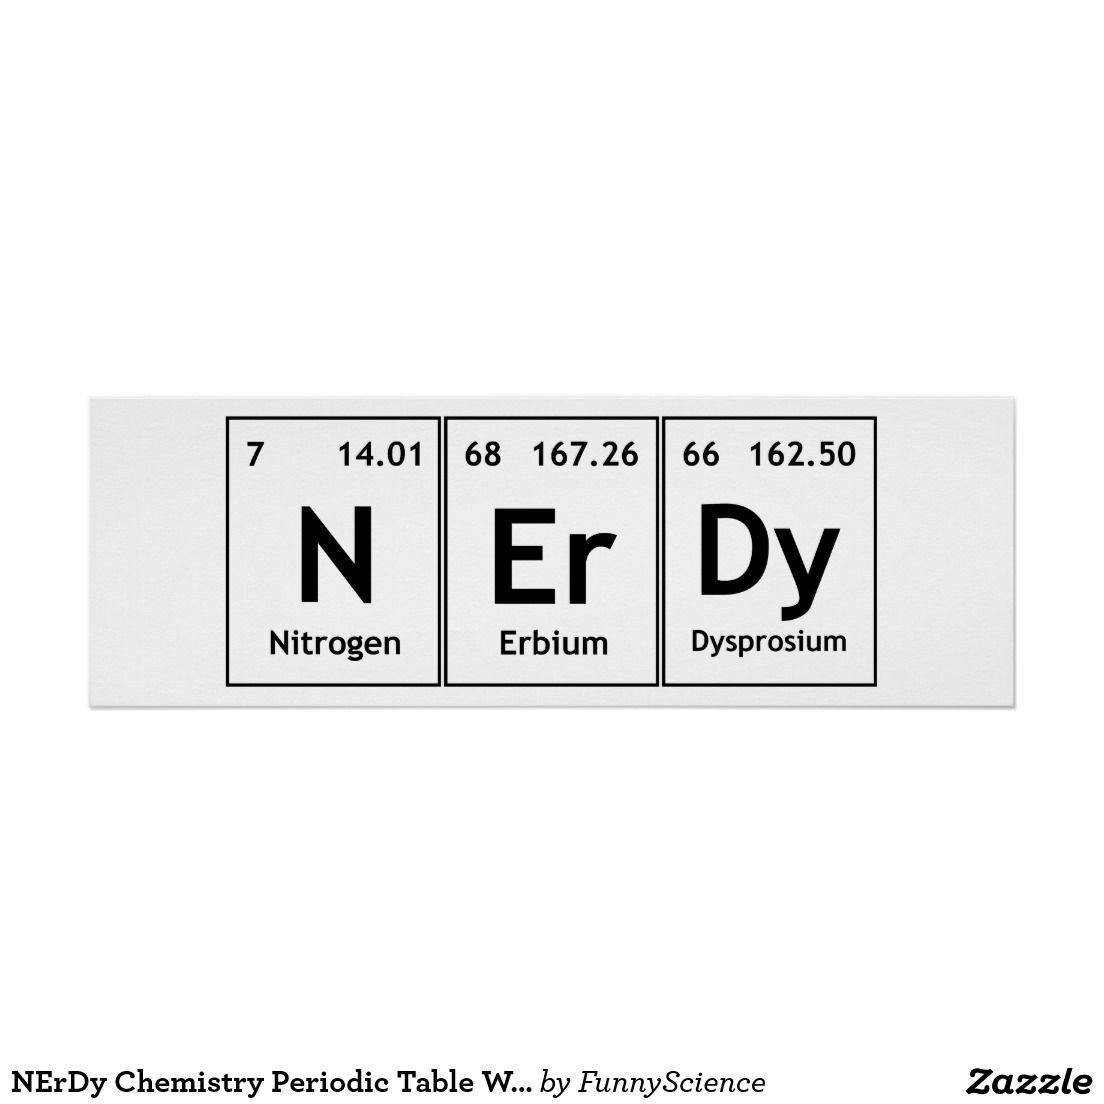 Nerdy chemistry periodic table words elements nerd poster nerdy chemistry periodic table words elements nerd poster urtaz Image collections